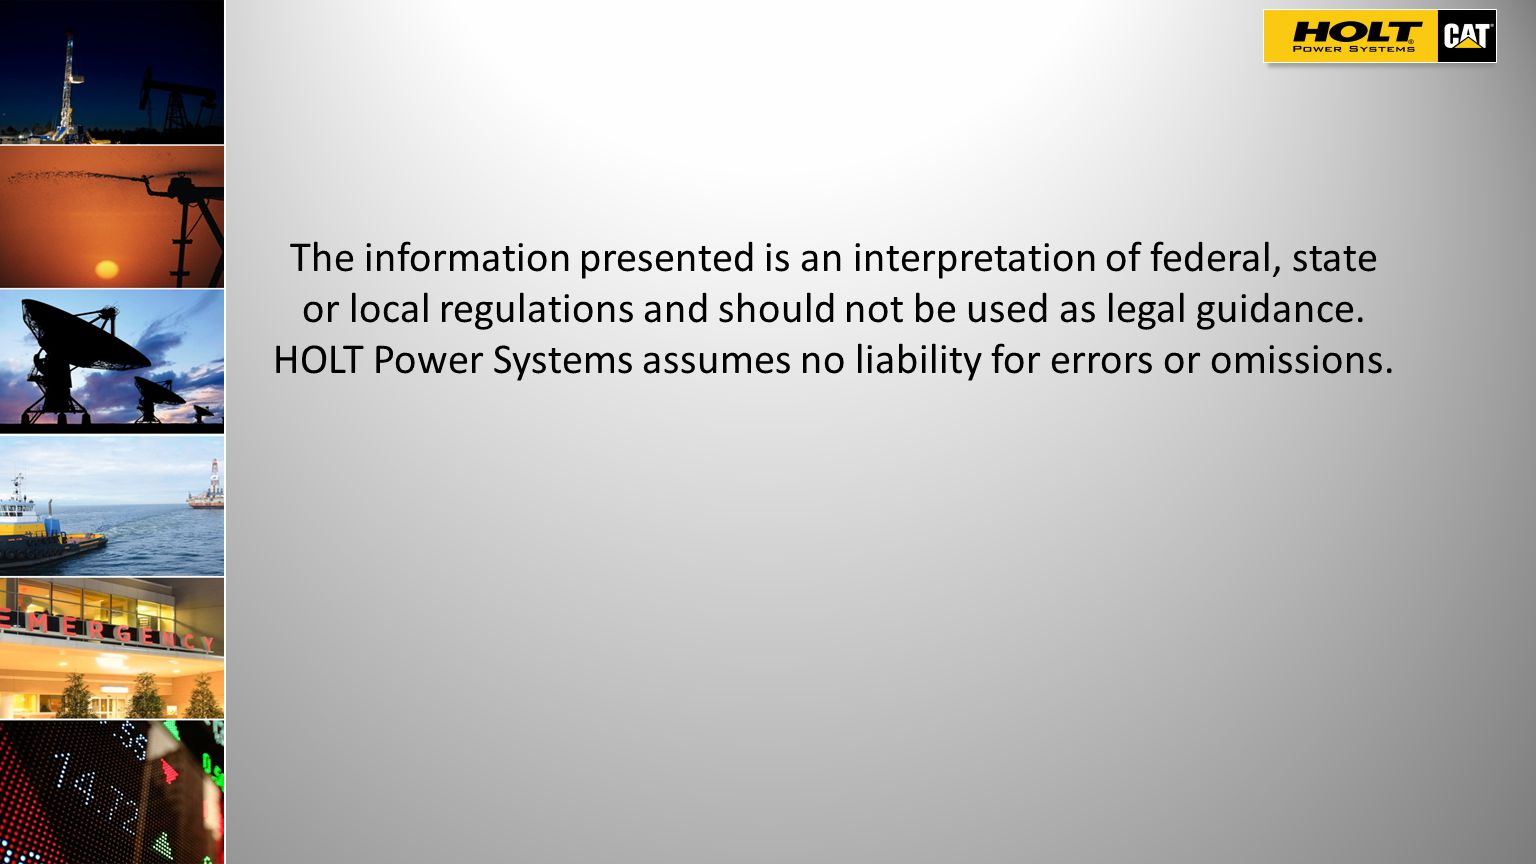 The information presented is an interpretation of federal, state or local regulations and should not be used as legal guidance.